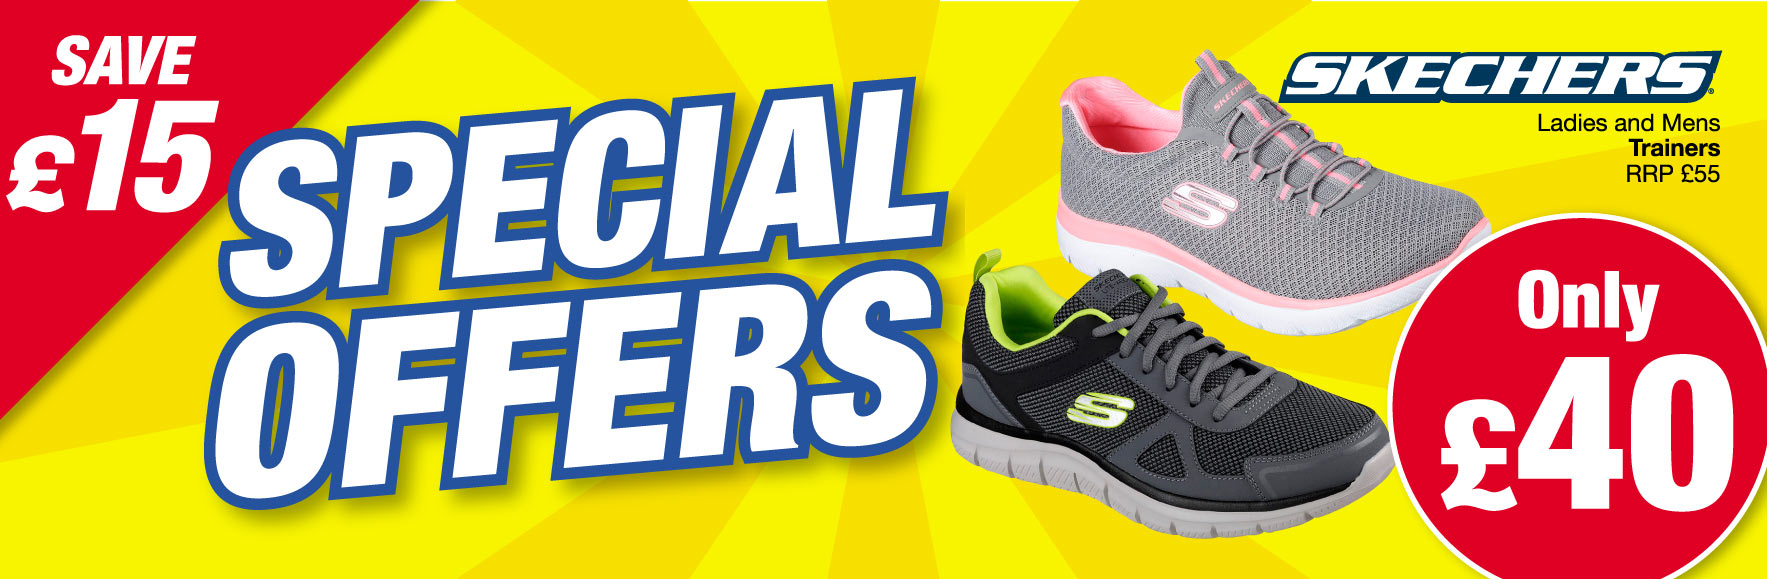 Skechers Ladies and Mens trainer RRP £55 ONLY £40